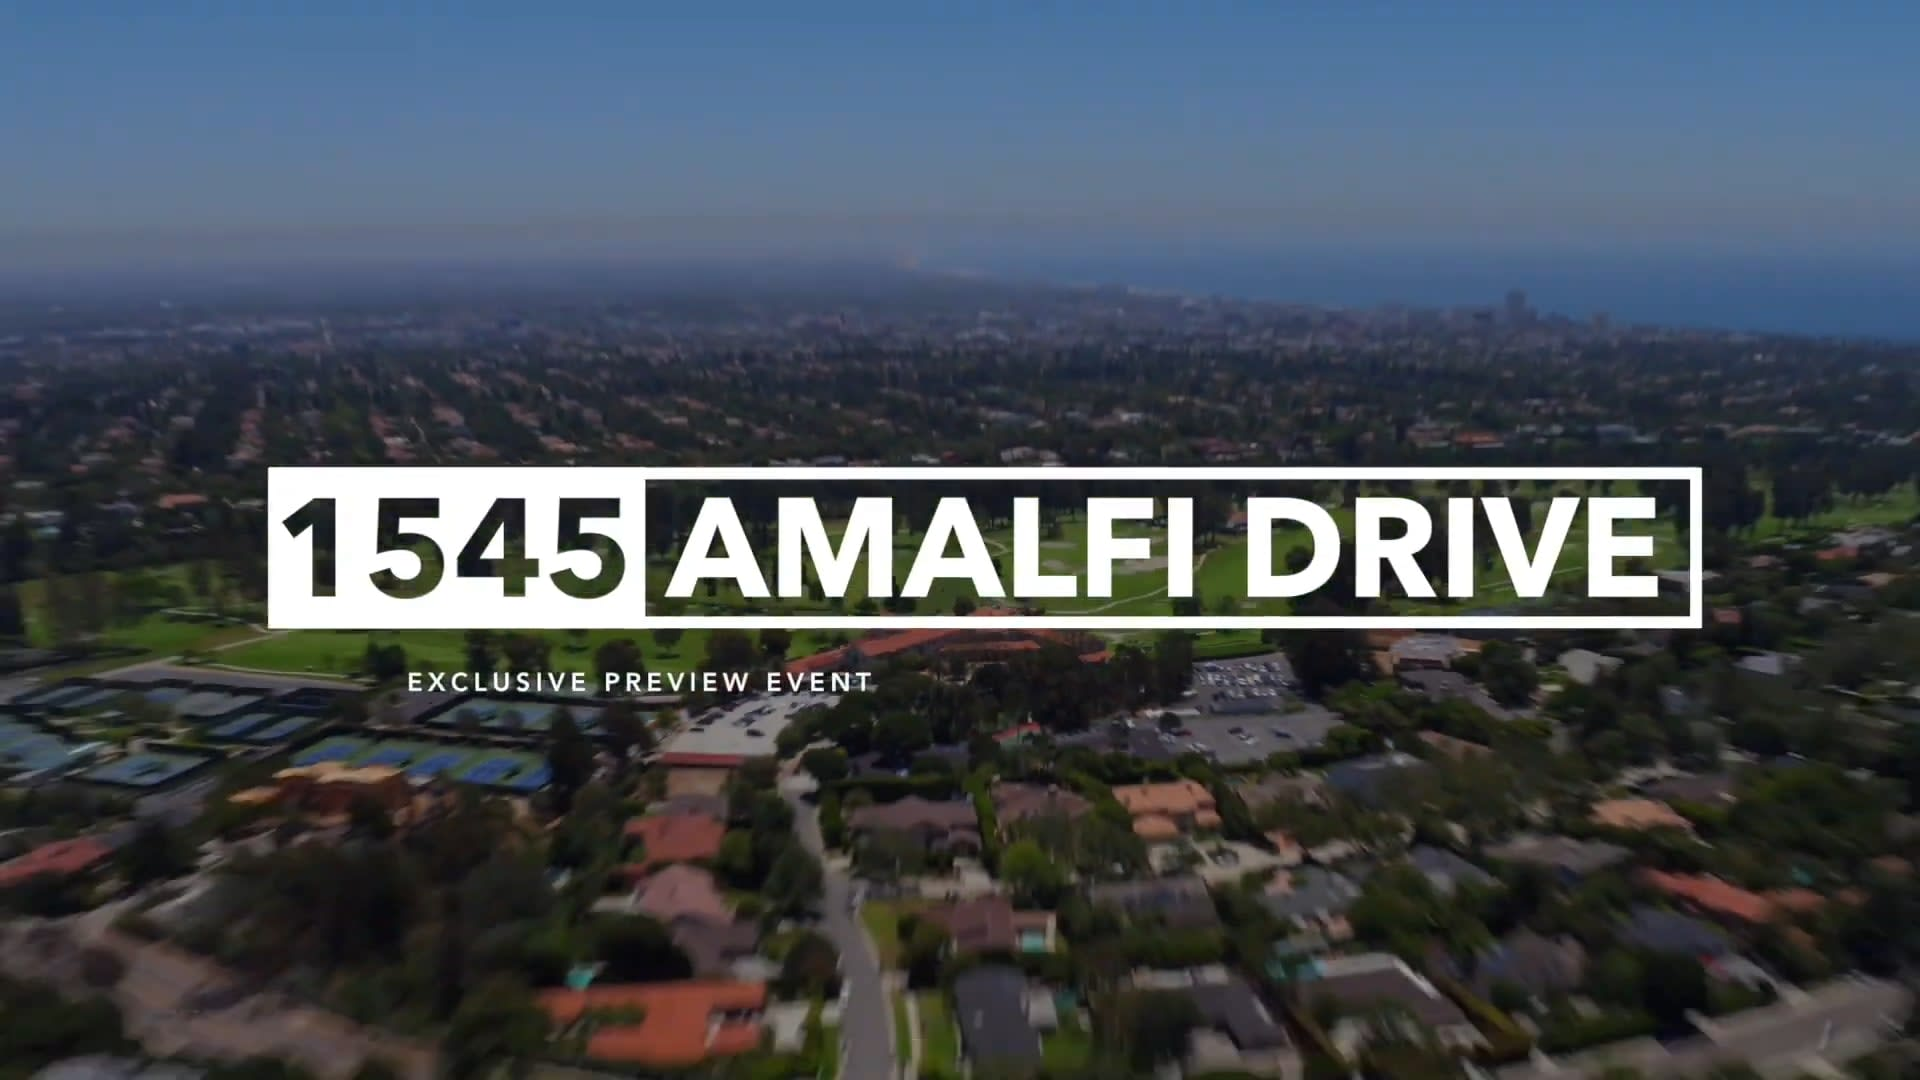 1545 Amalfi Drive - Twilight Event V1 video preview